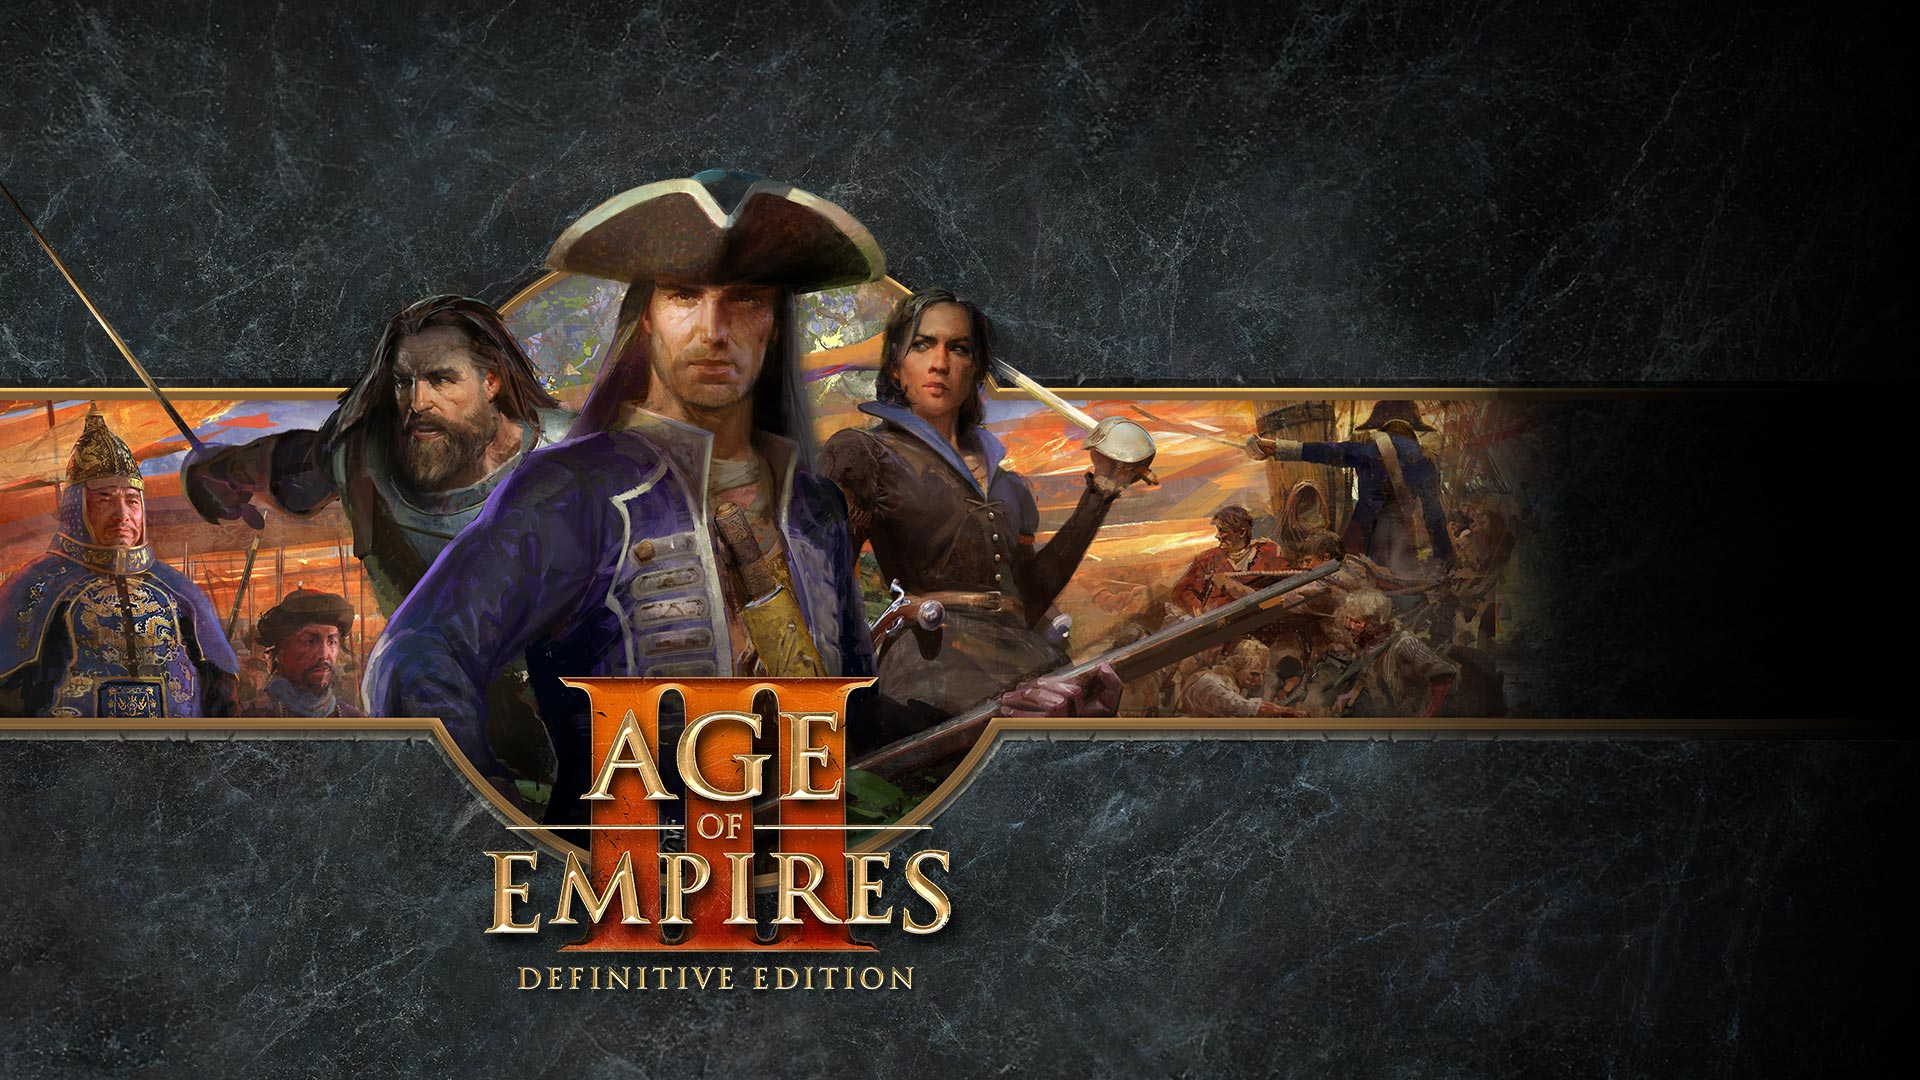 Trucchi e Codici Age of Empires 3 – PC